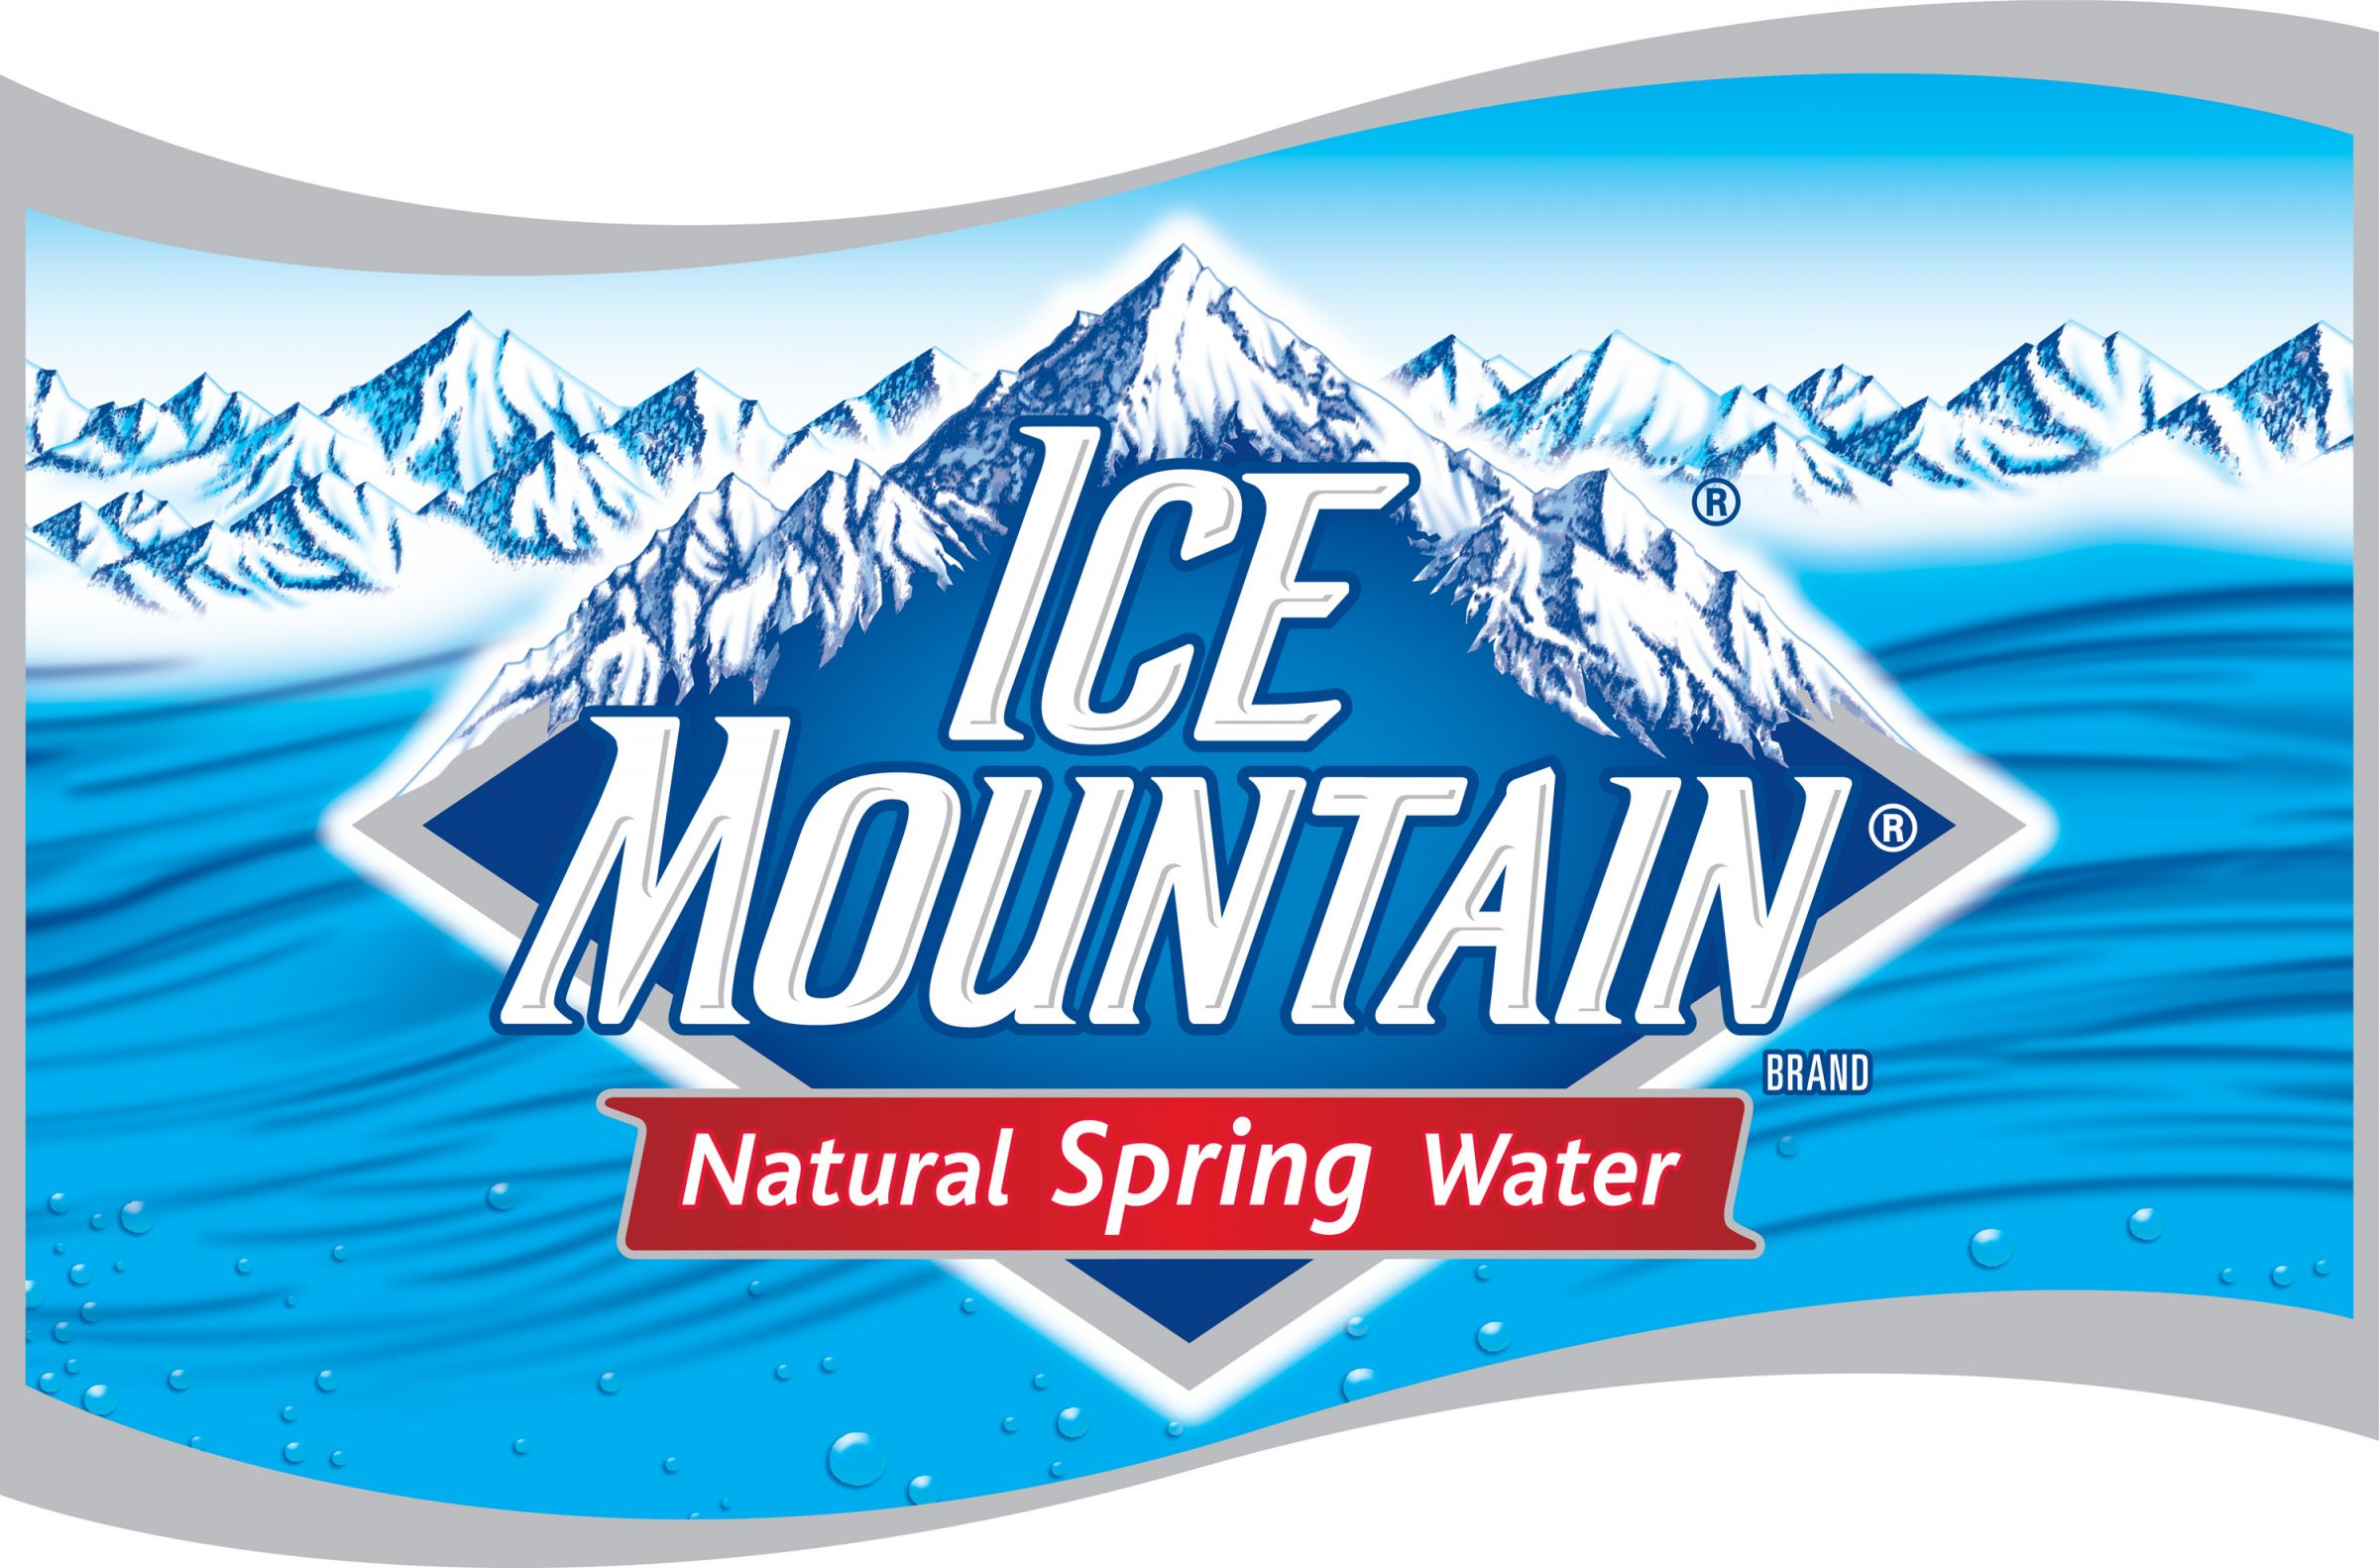 Ice Mountain to expand and hire new employees in Mecosta Co